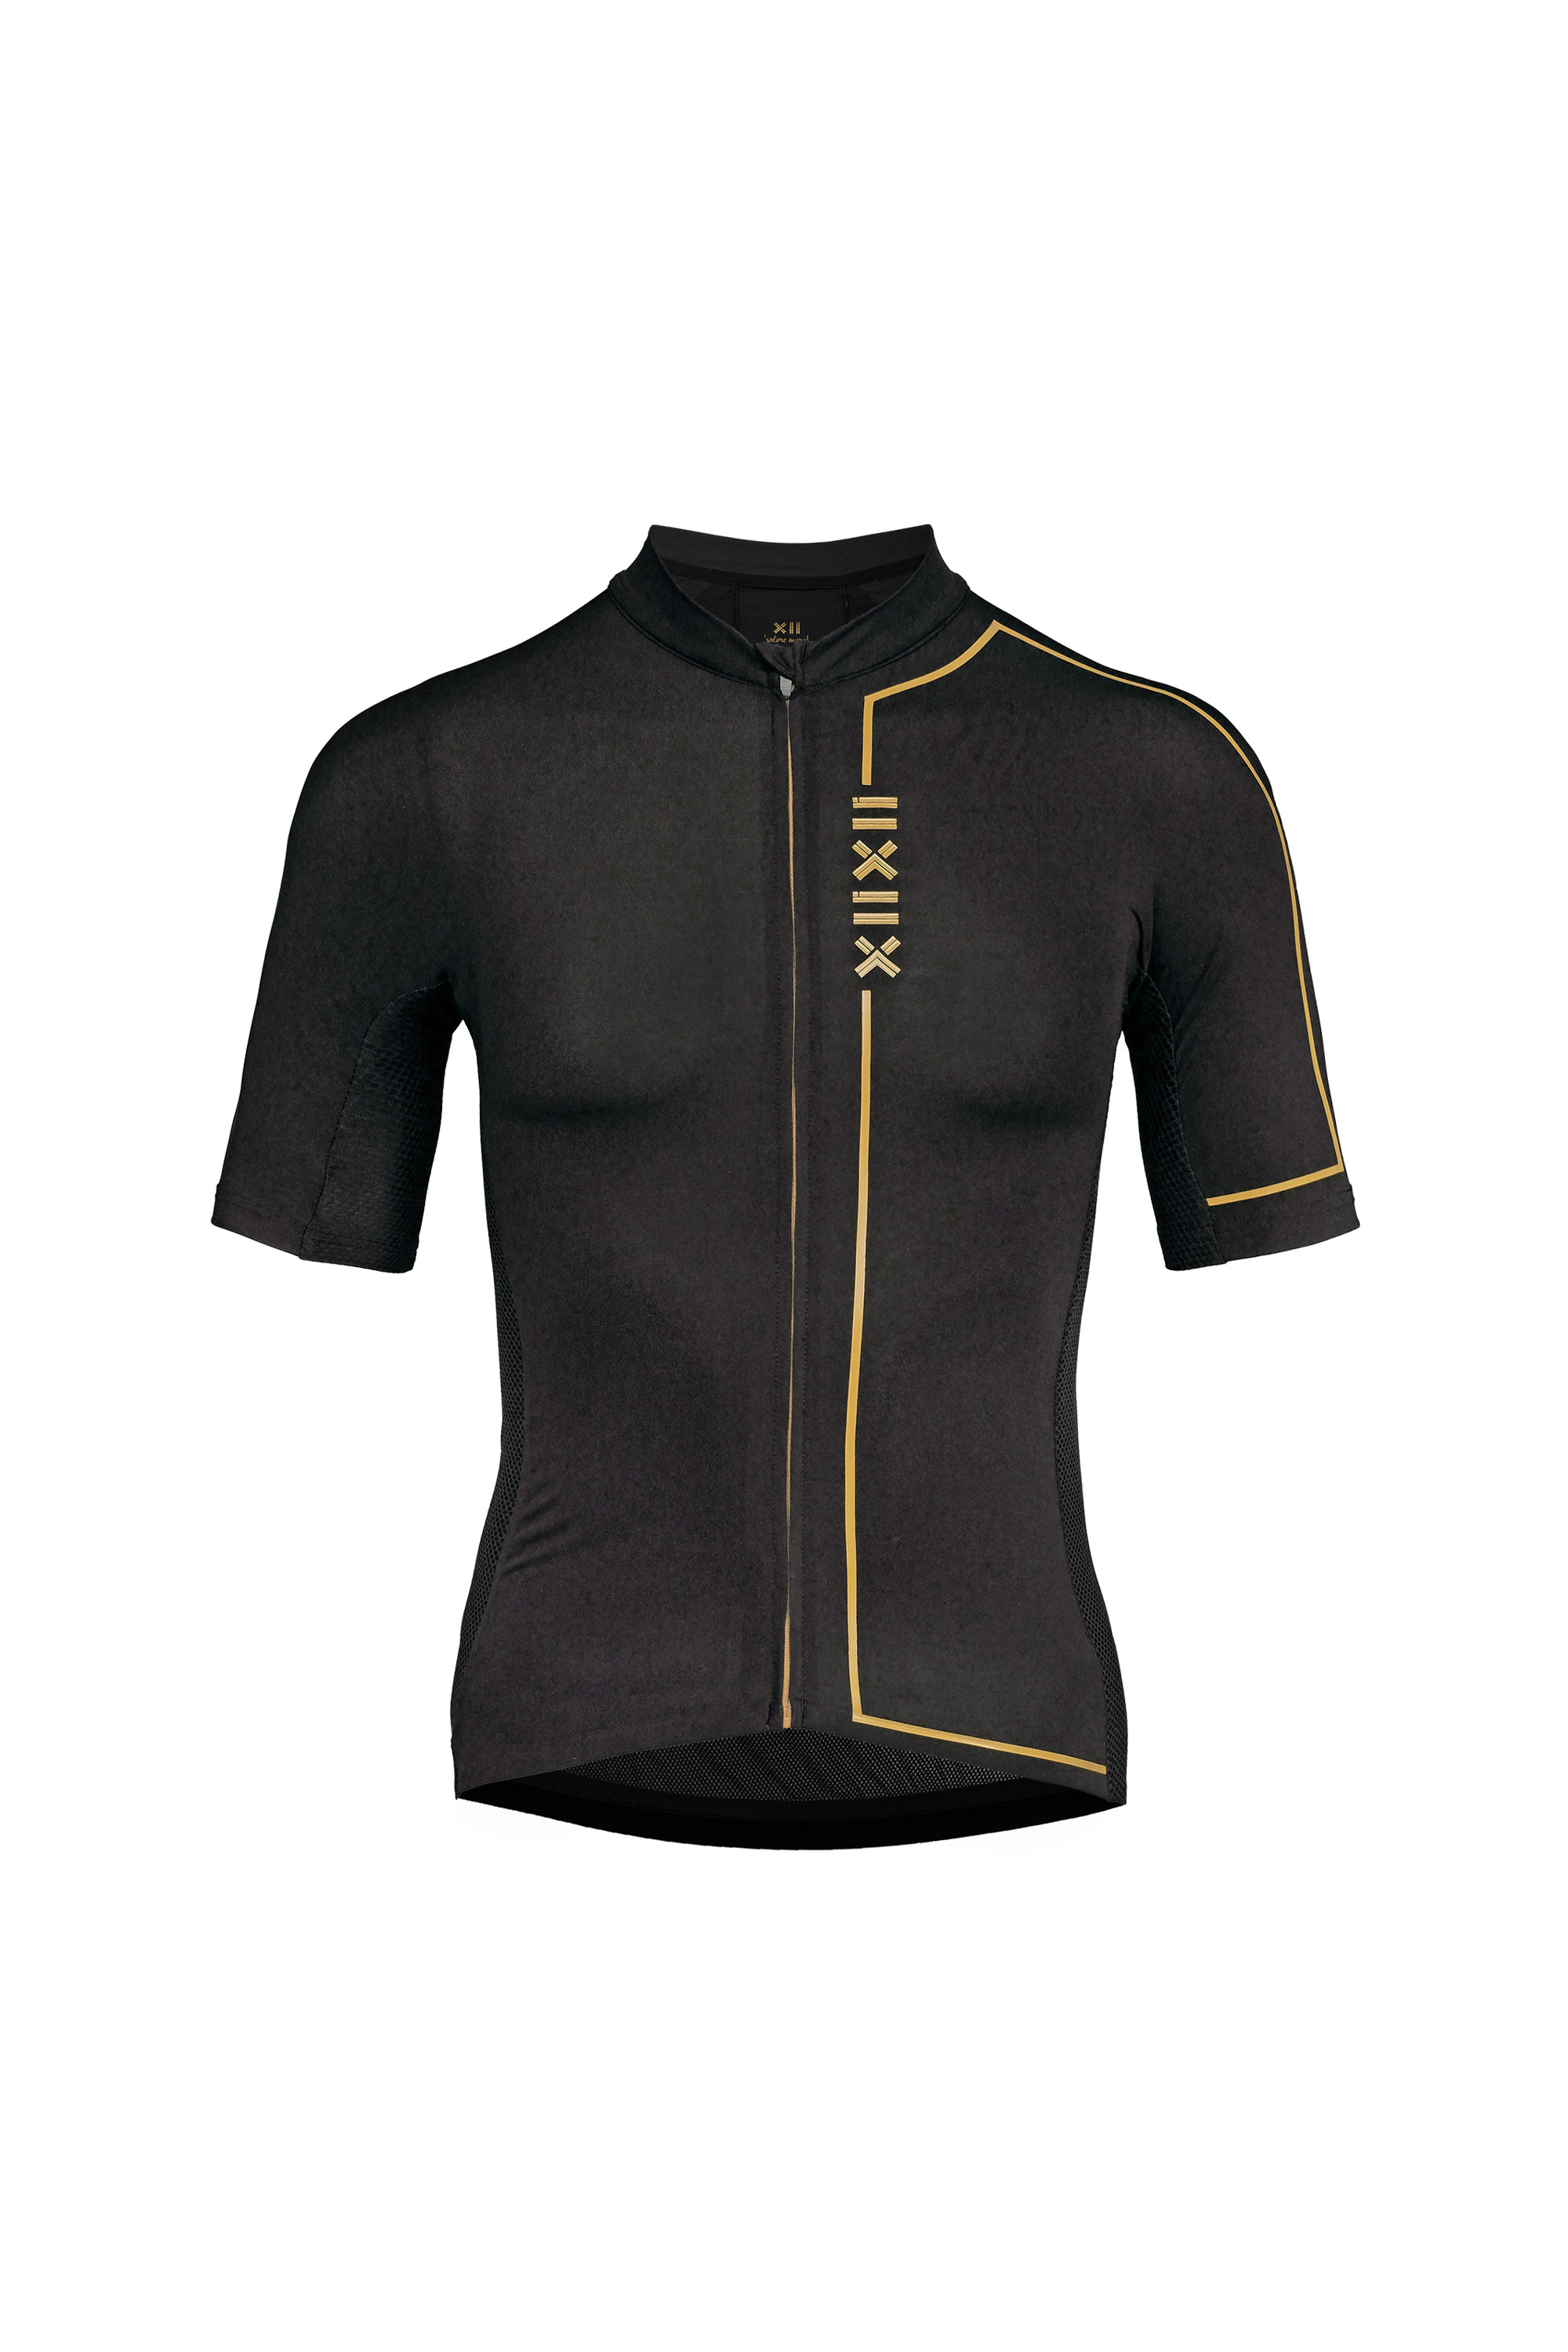 e74f187d6 ... Pirate Black Jersey – Men. 🔍. cycling jersey